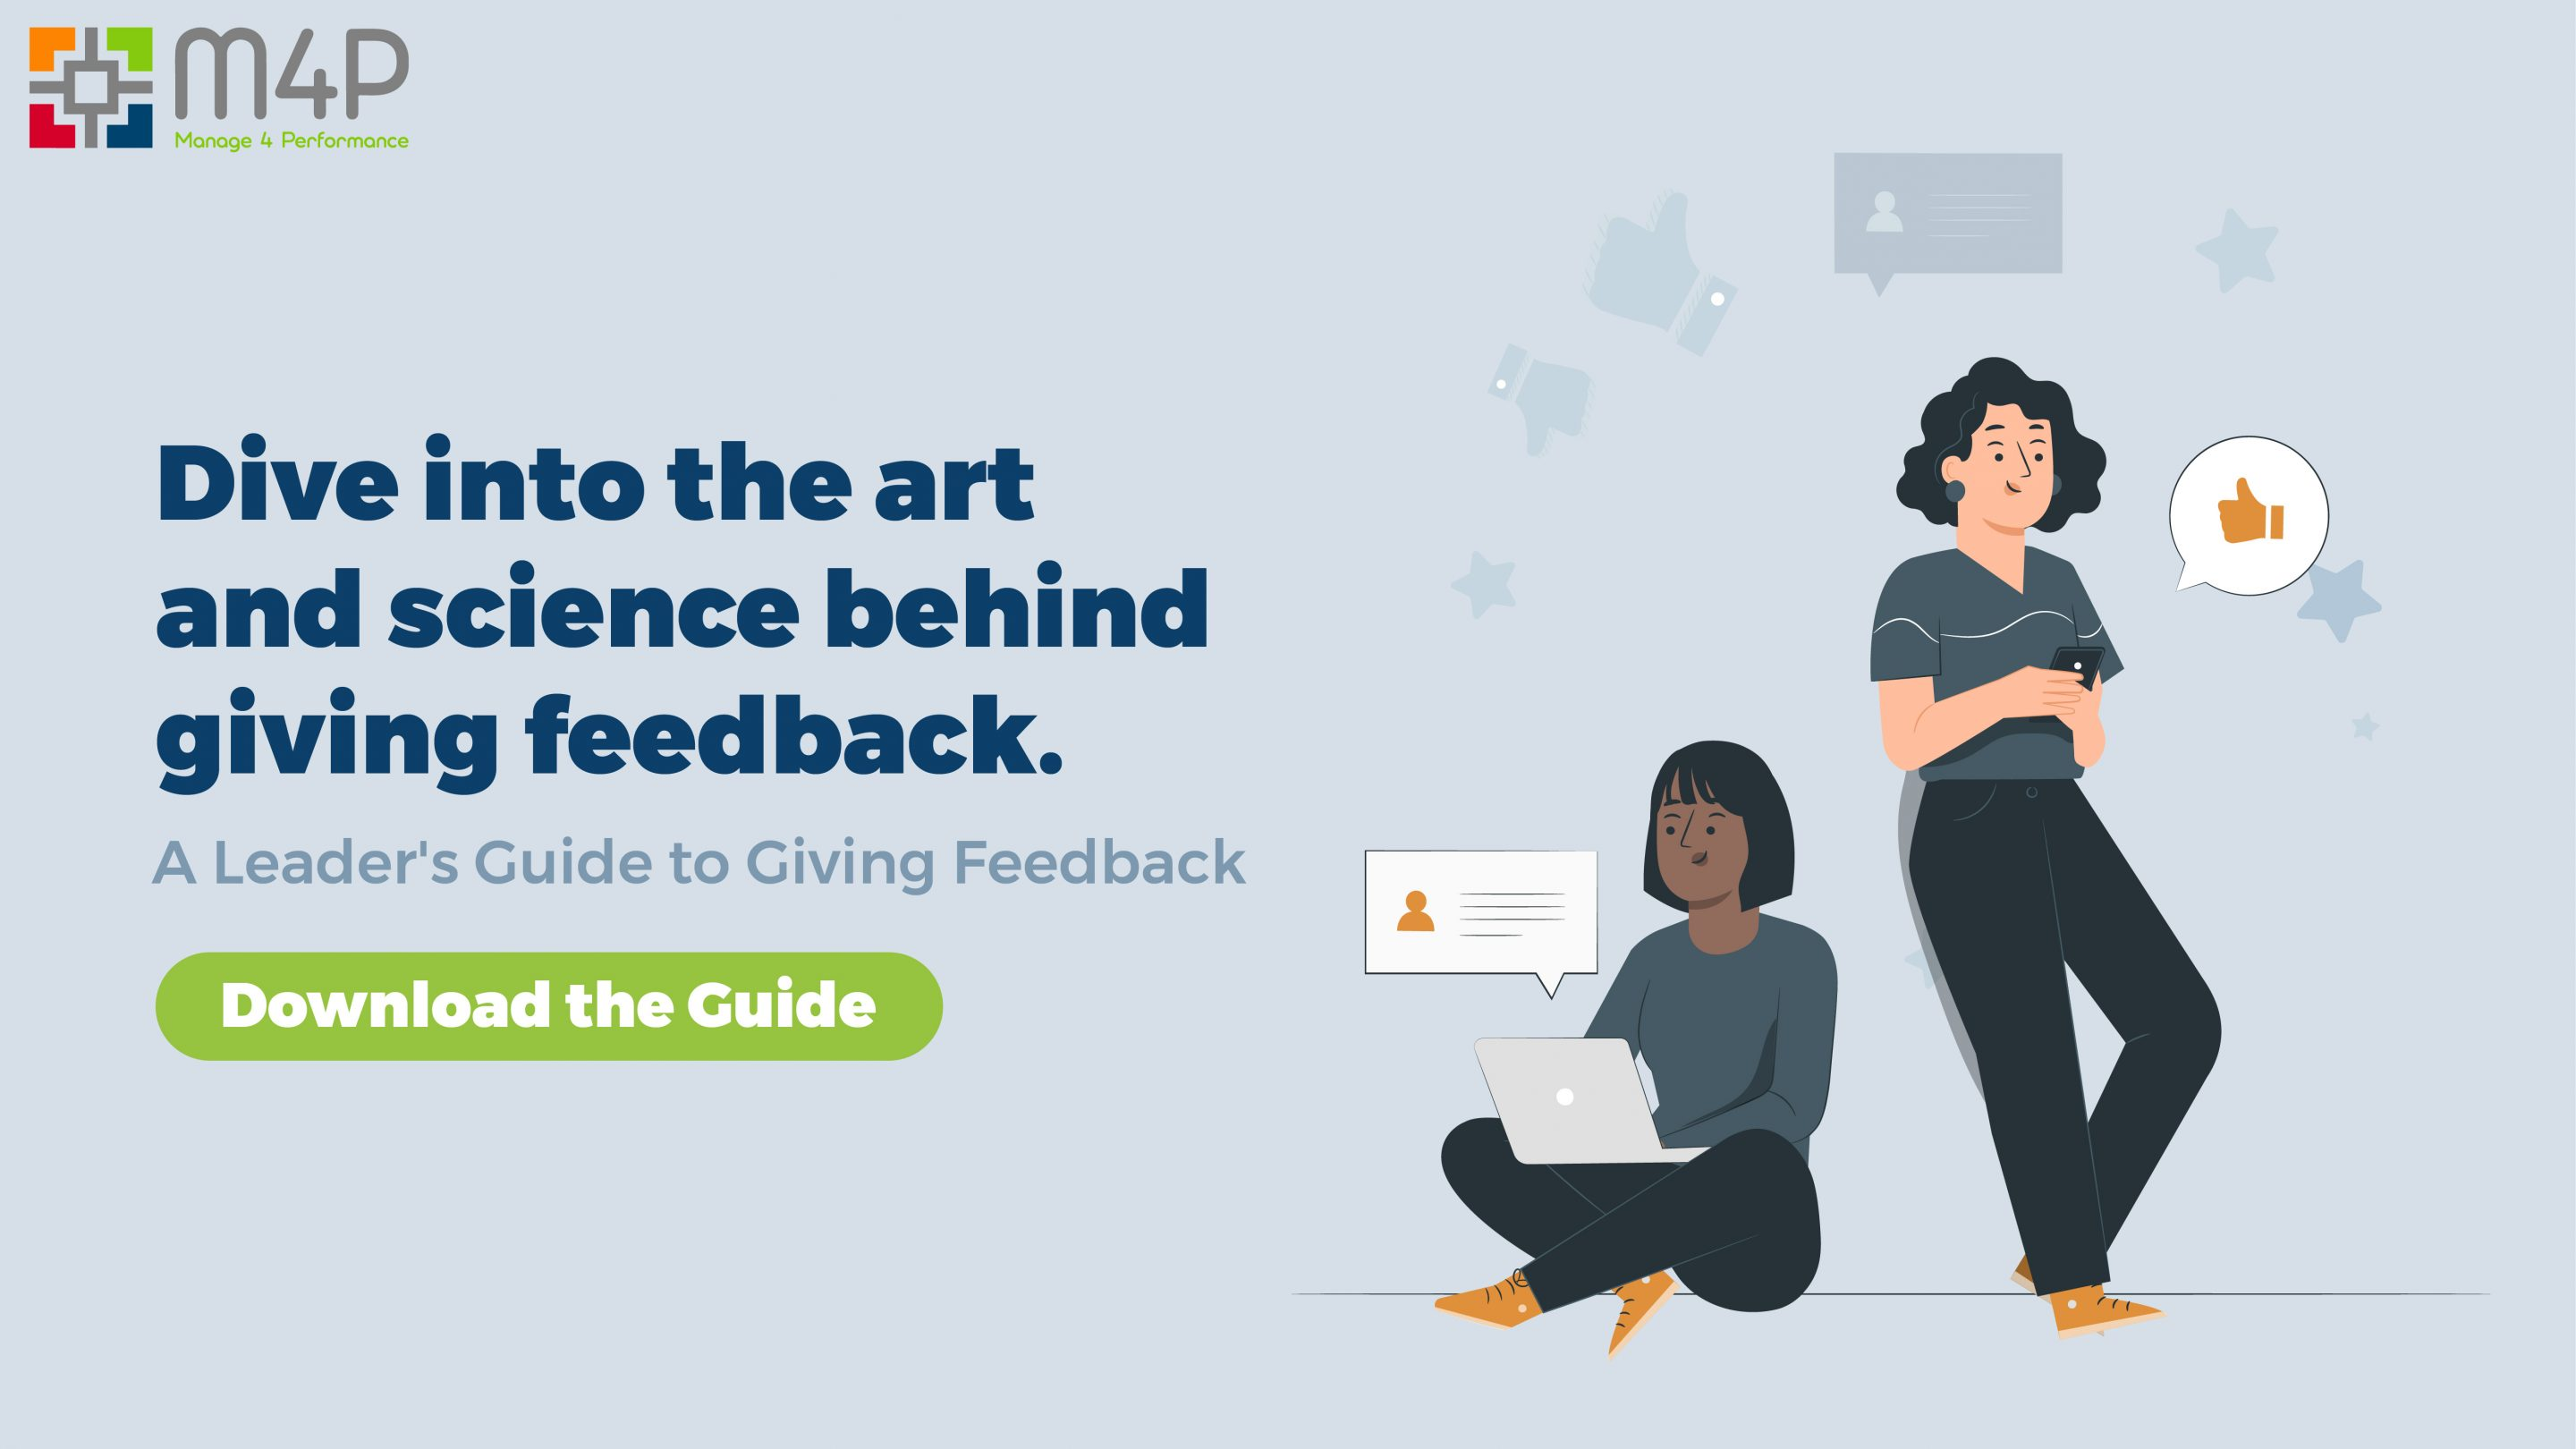 A leader's guide to giving feedback